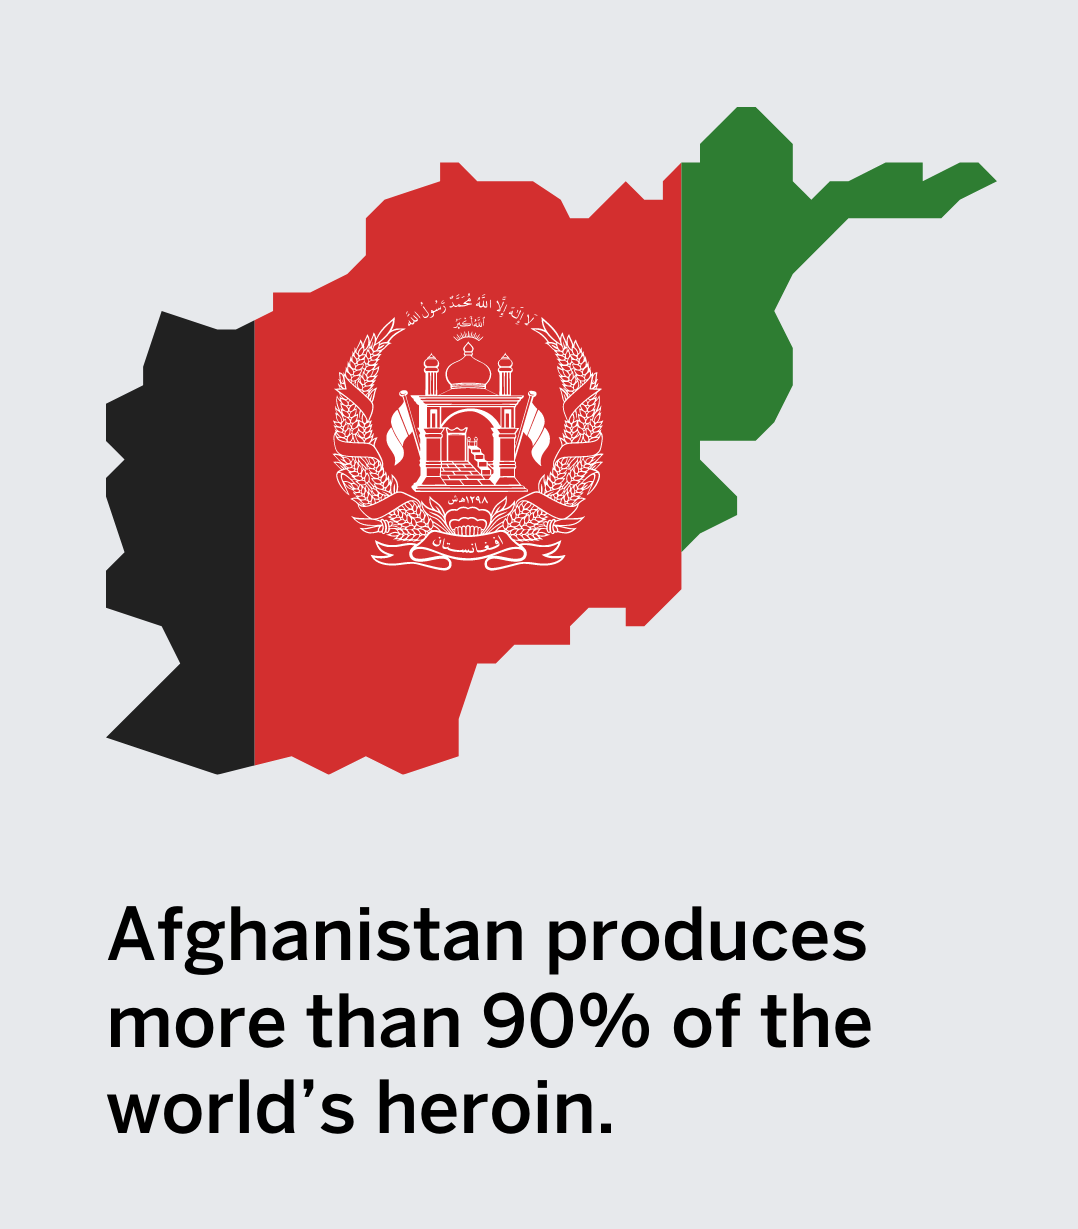 Graphic of the country of Afghanistan with the text: Afghanistan produces more than 90% of the world's heroin.